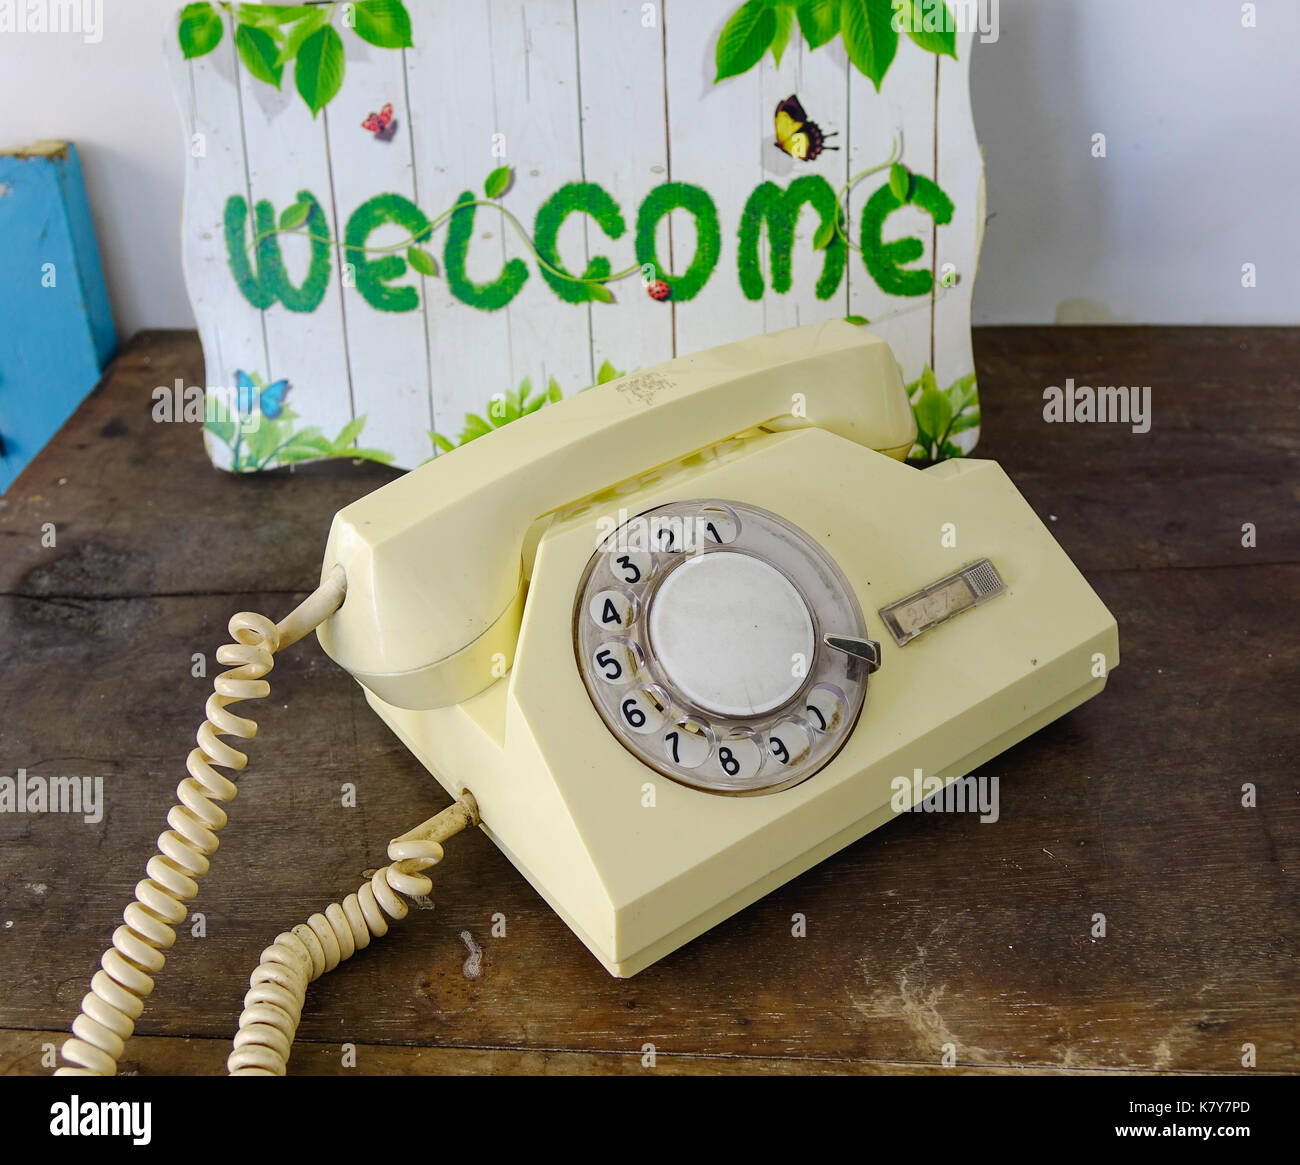 Retro Yellow Telephone On Wood Table With Welcome Board For